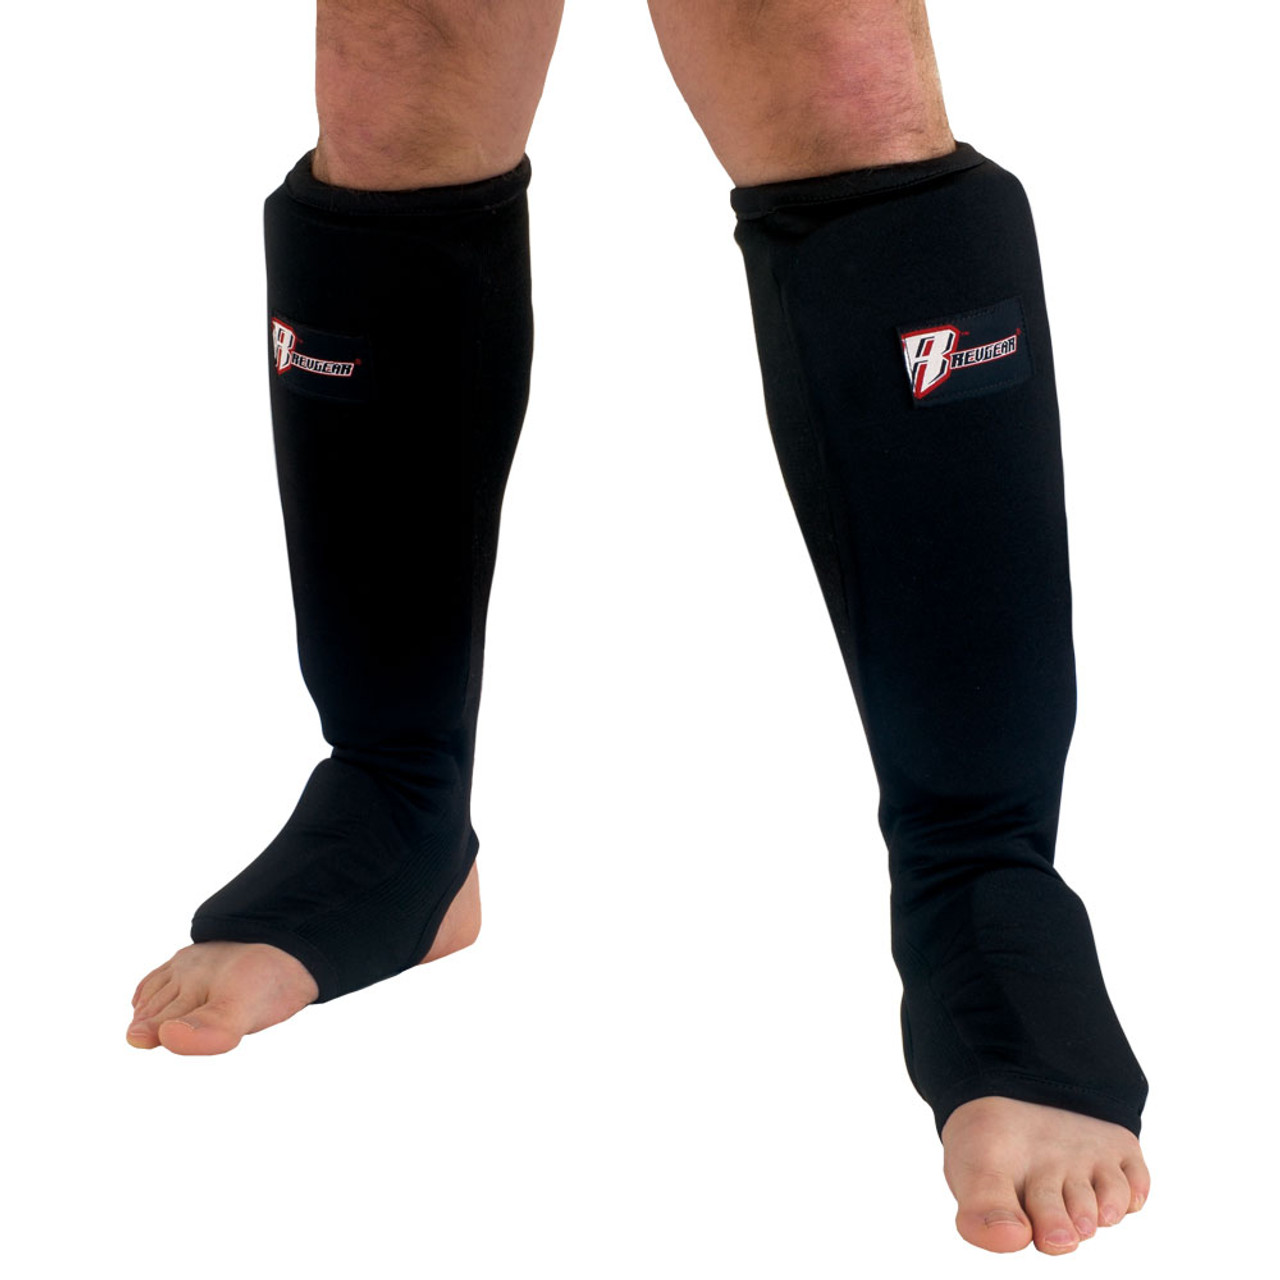 Cloth Shin and Instep Pad - Black